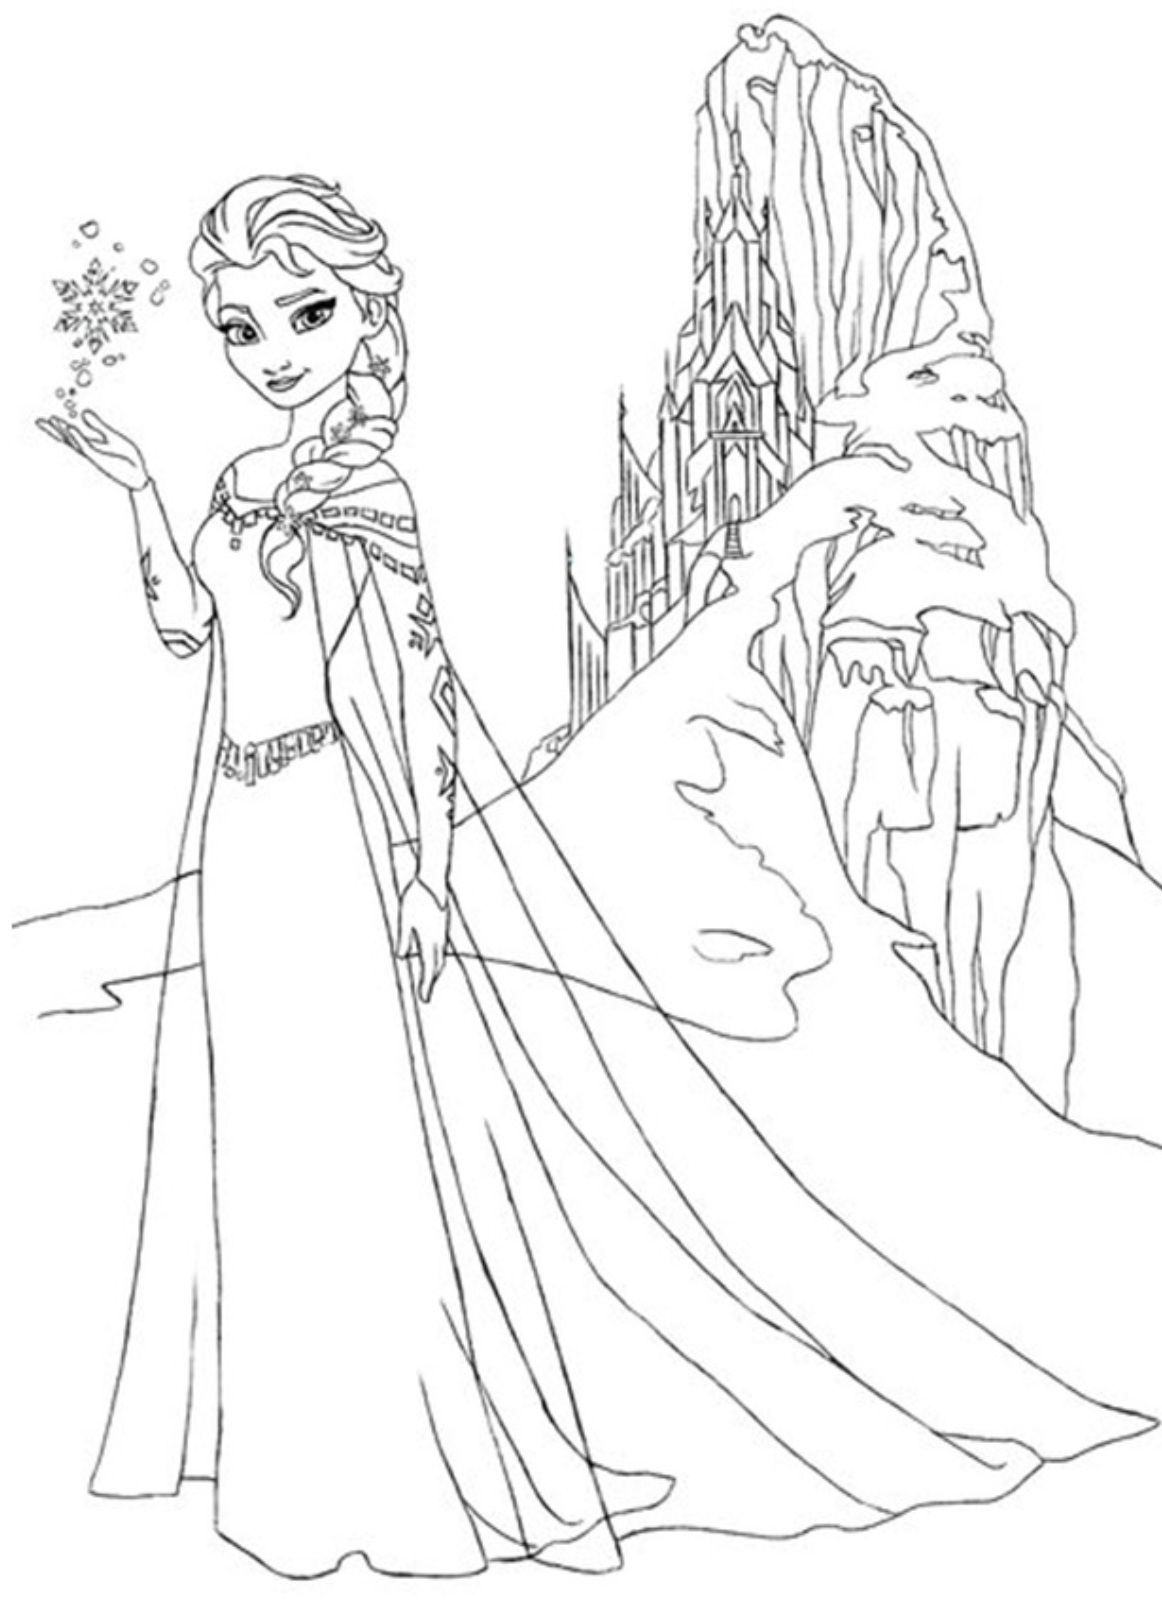 Disney princess coloring pages frozen